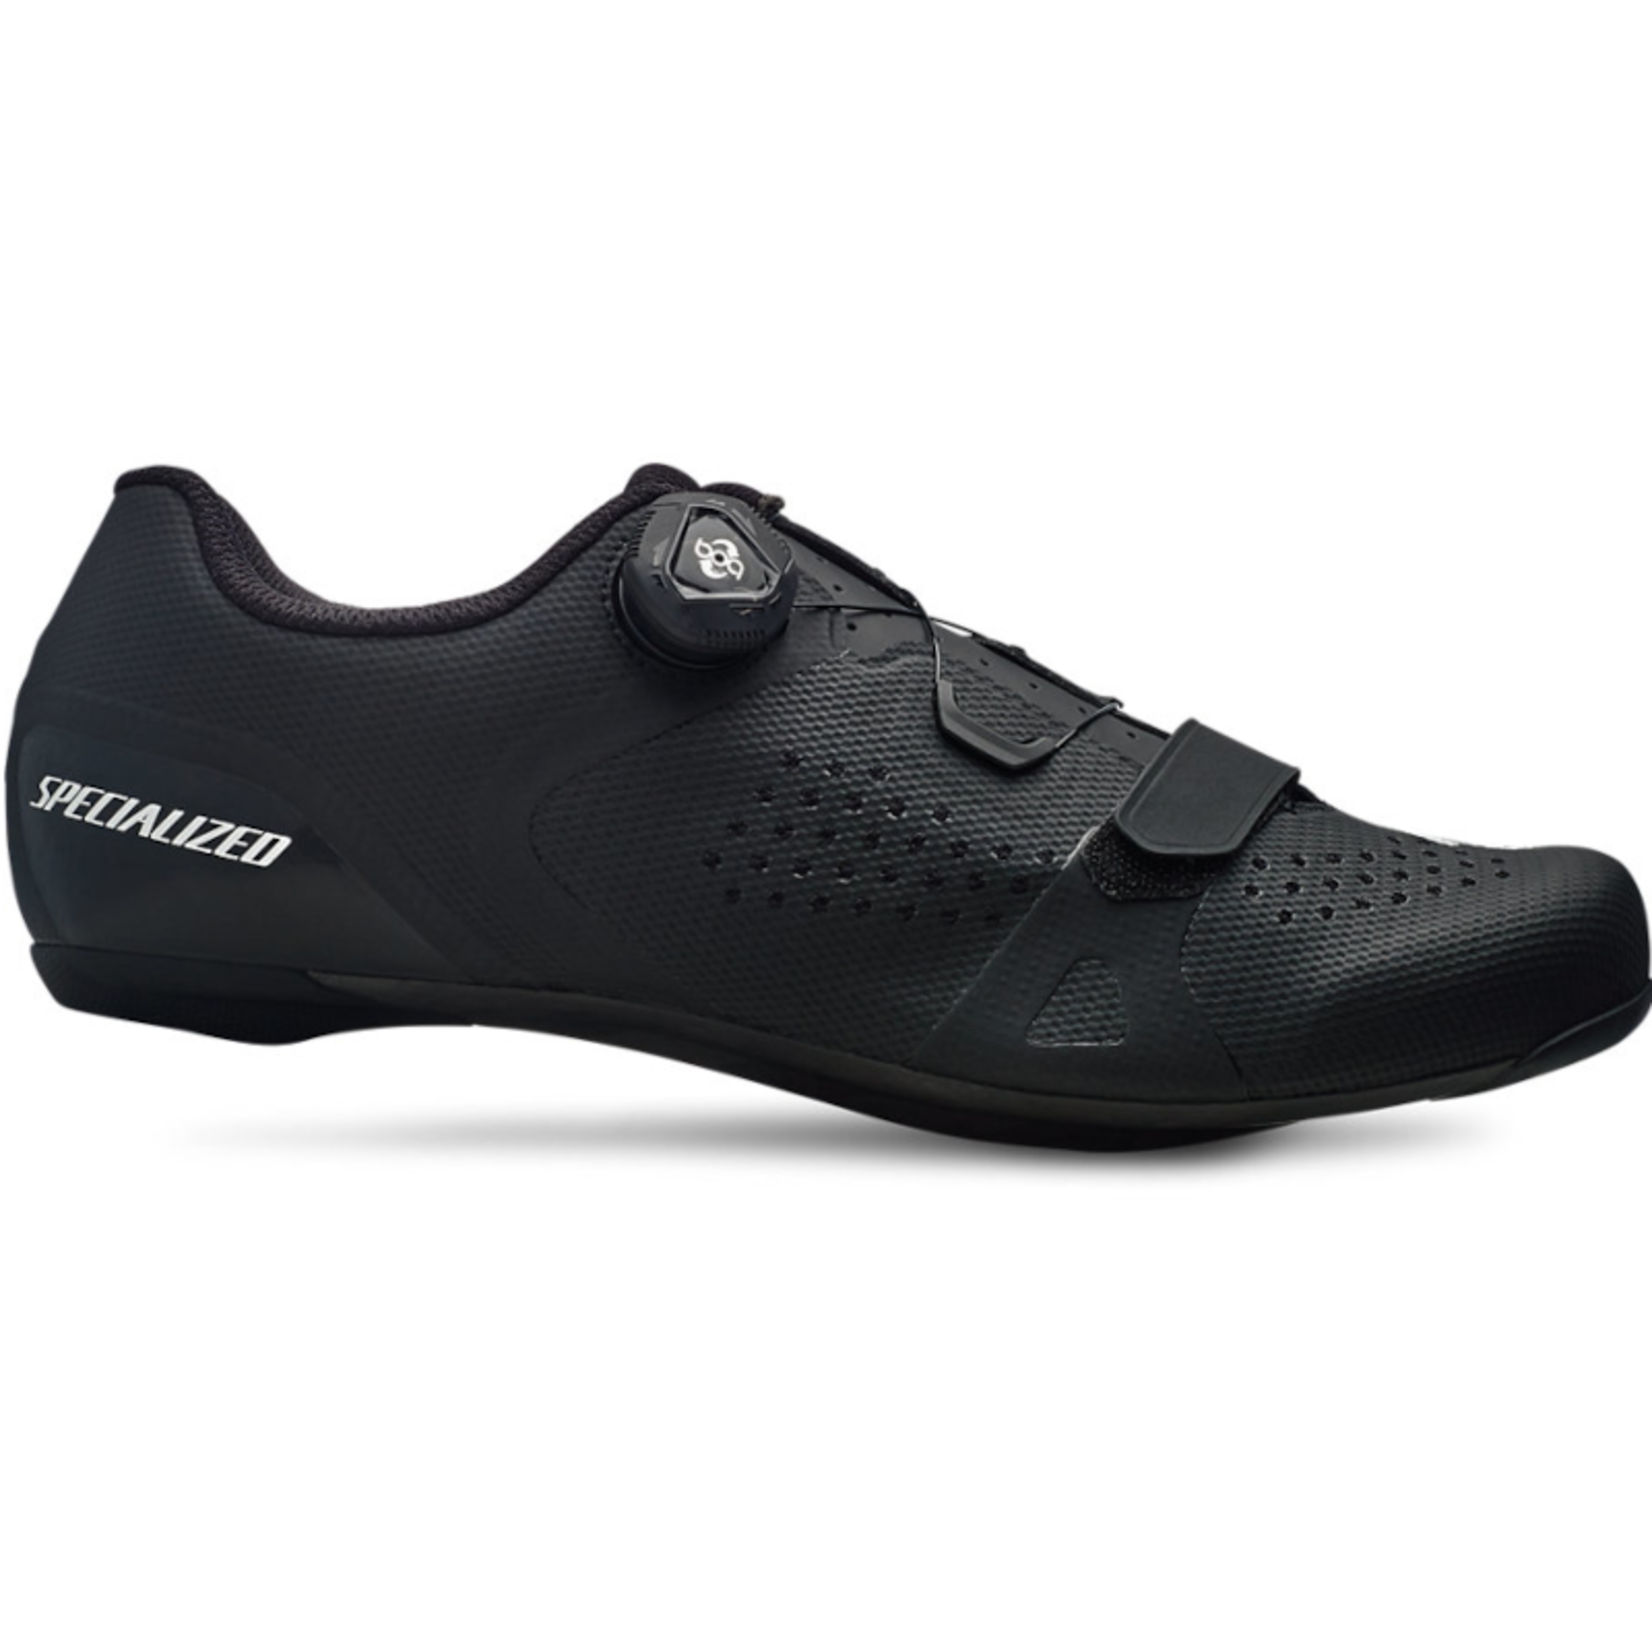 Specialized Torch 2.0 Road Shoe - Wide